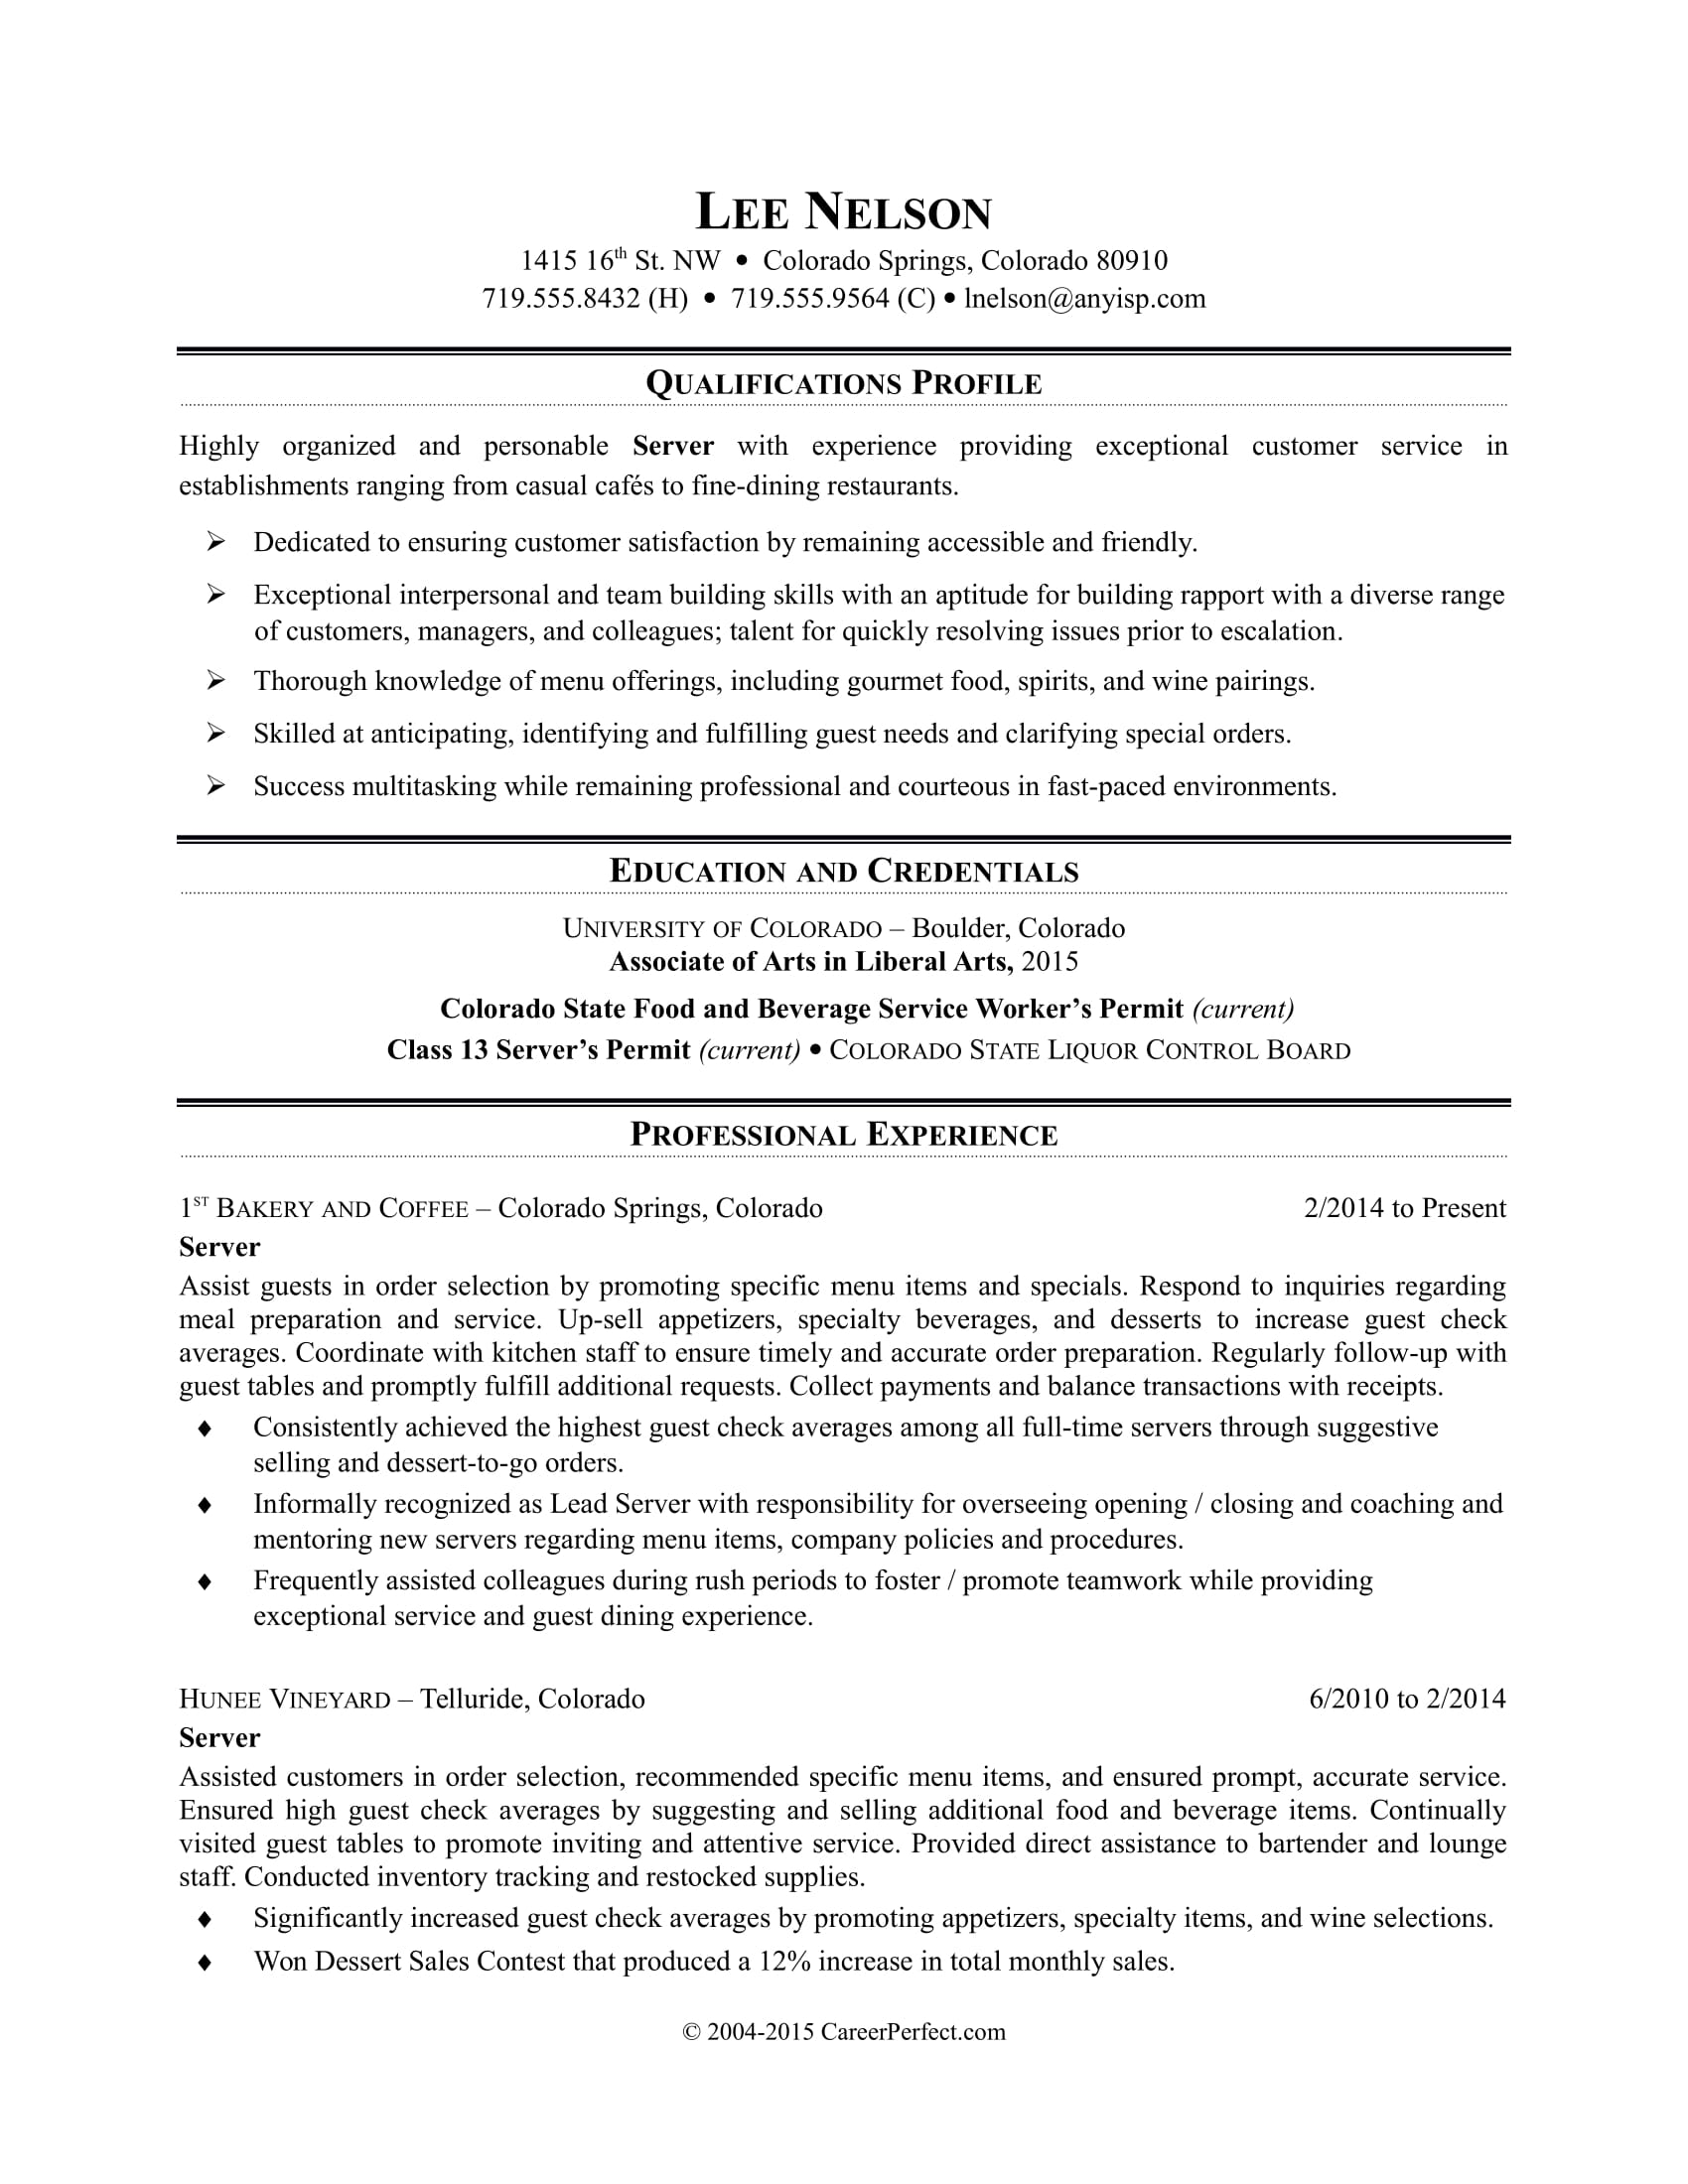 Charming Sample Resume For A Restaurant Server Inside Server Resume Samples